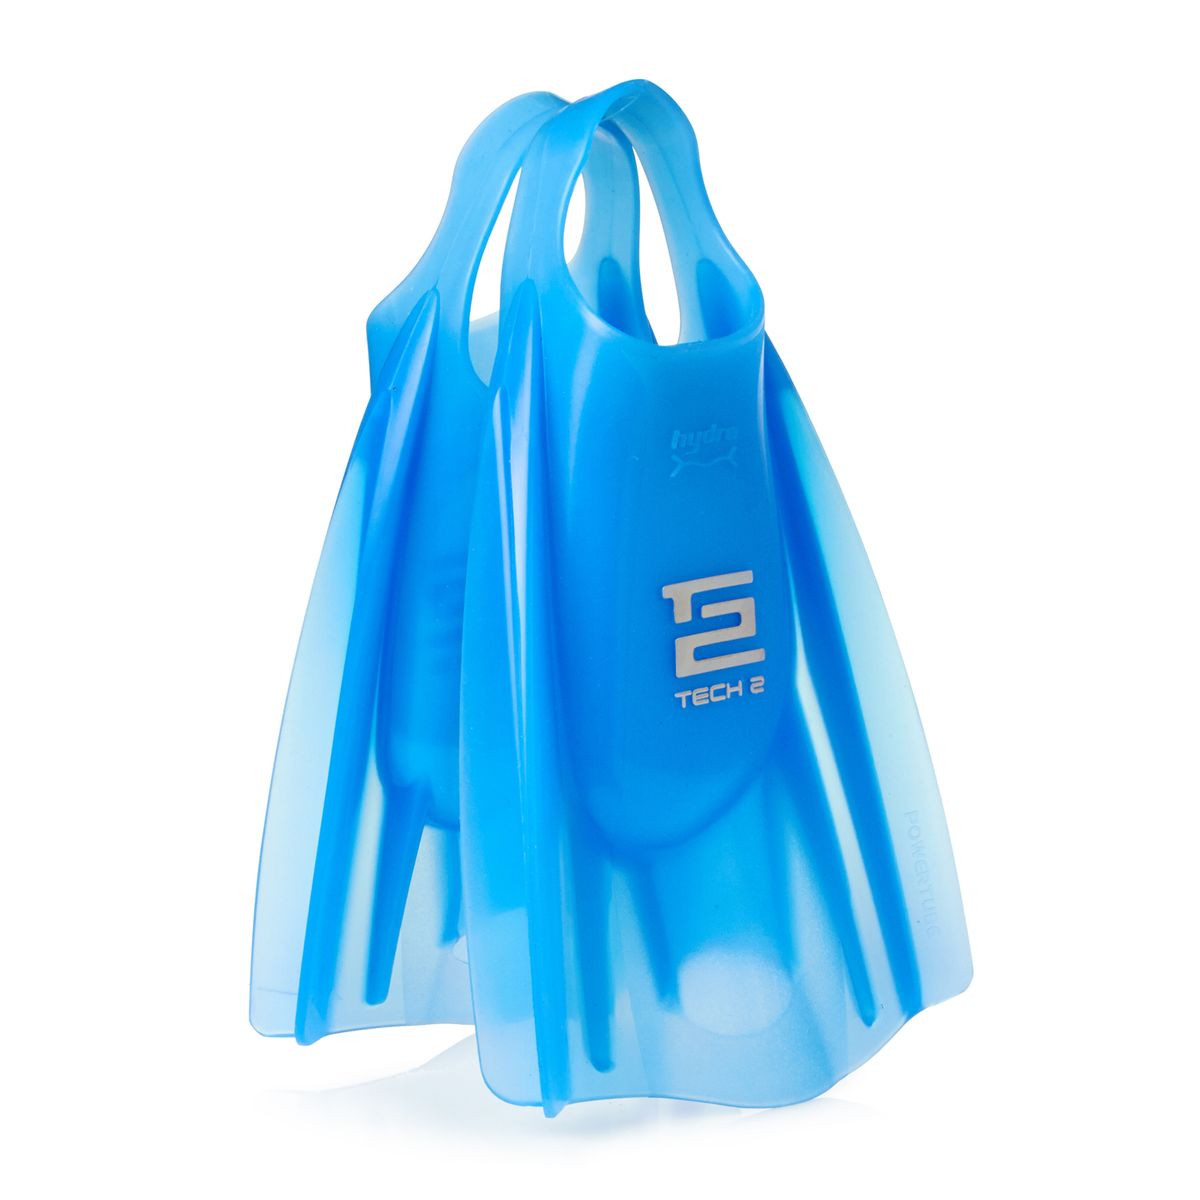 Hydro Tech 2 Ice Blue Bodyboard Fins - X-Large